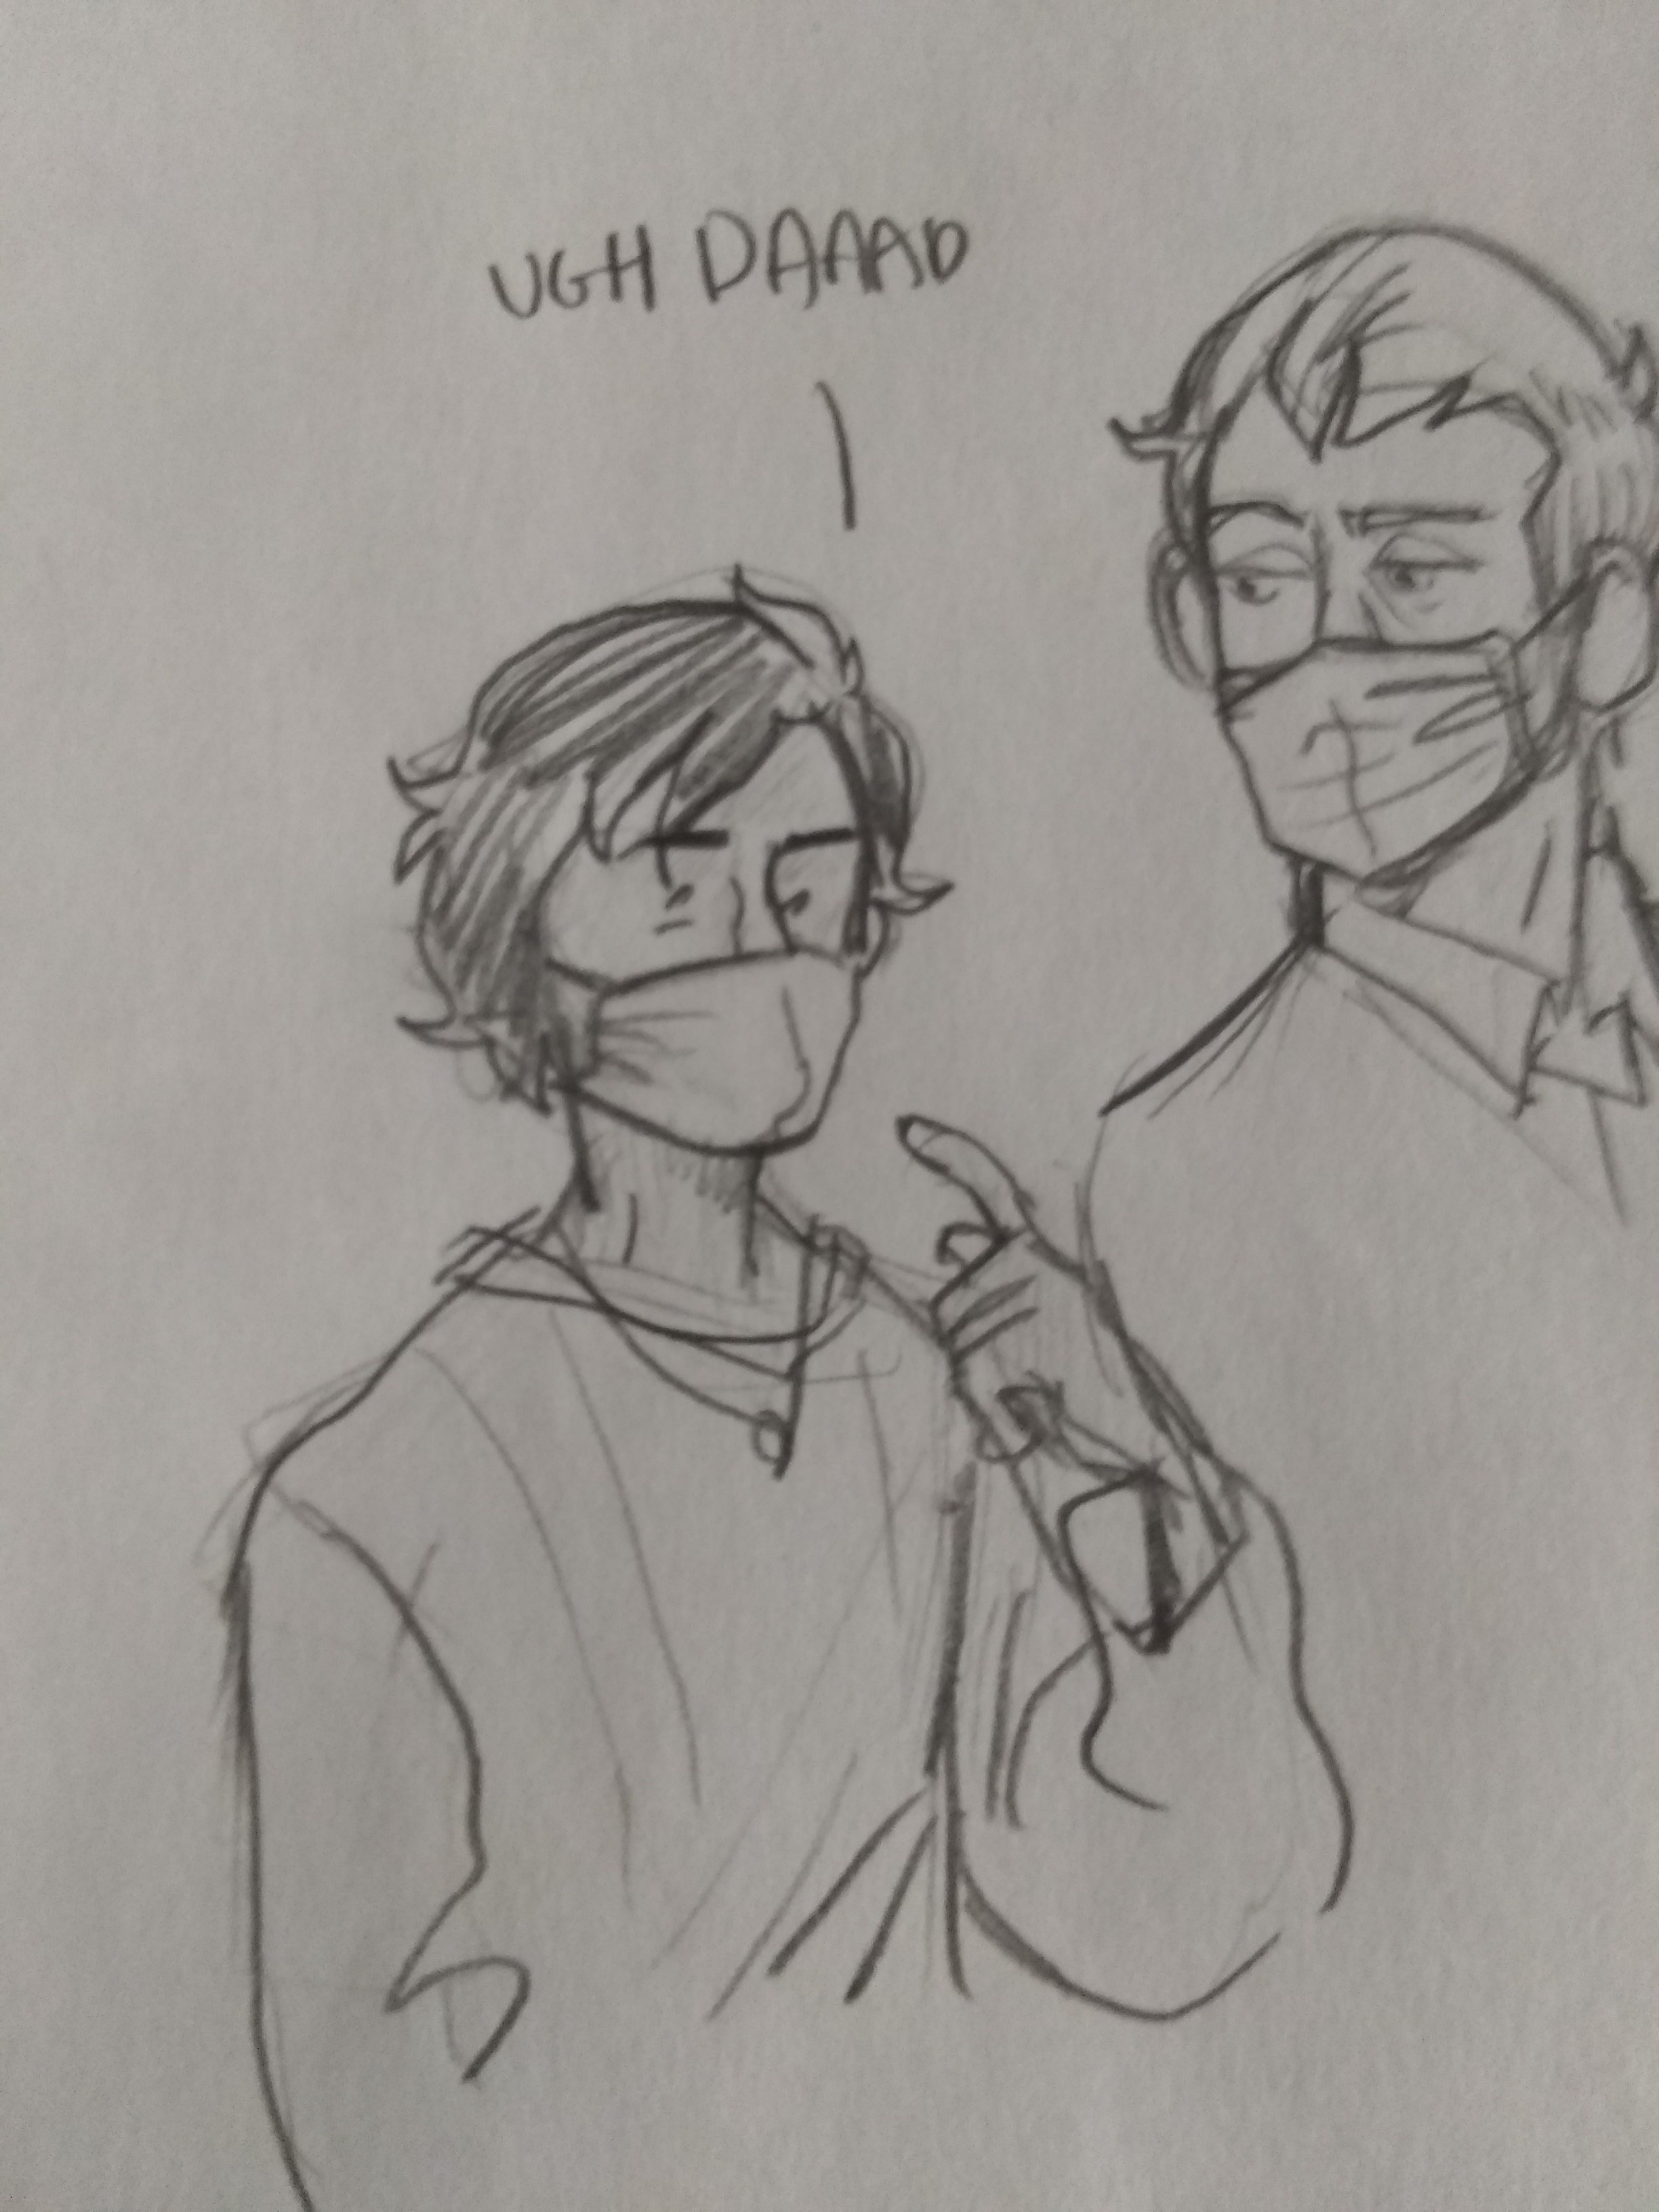 teen alan wears a mask and says ugh, dad. Howard, also wearing a mask, looks on.